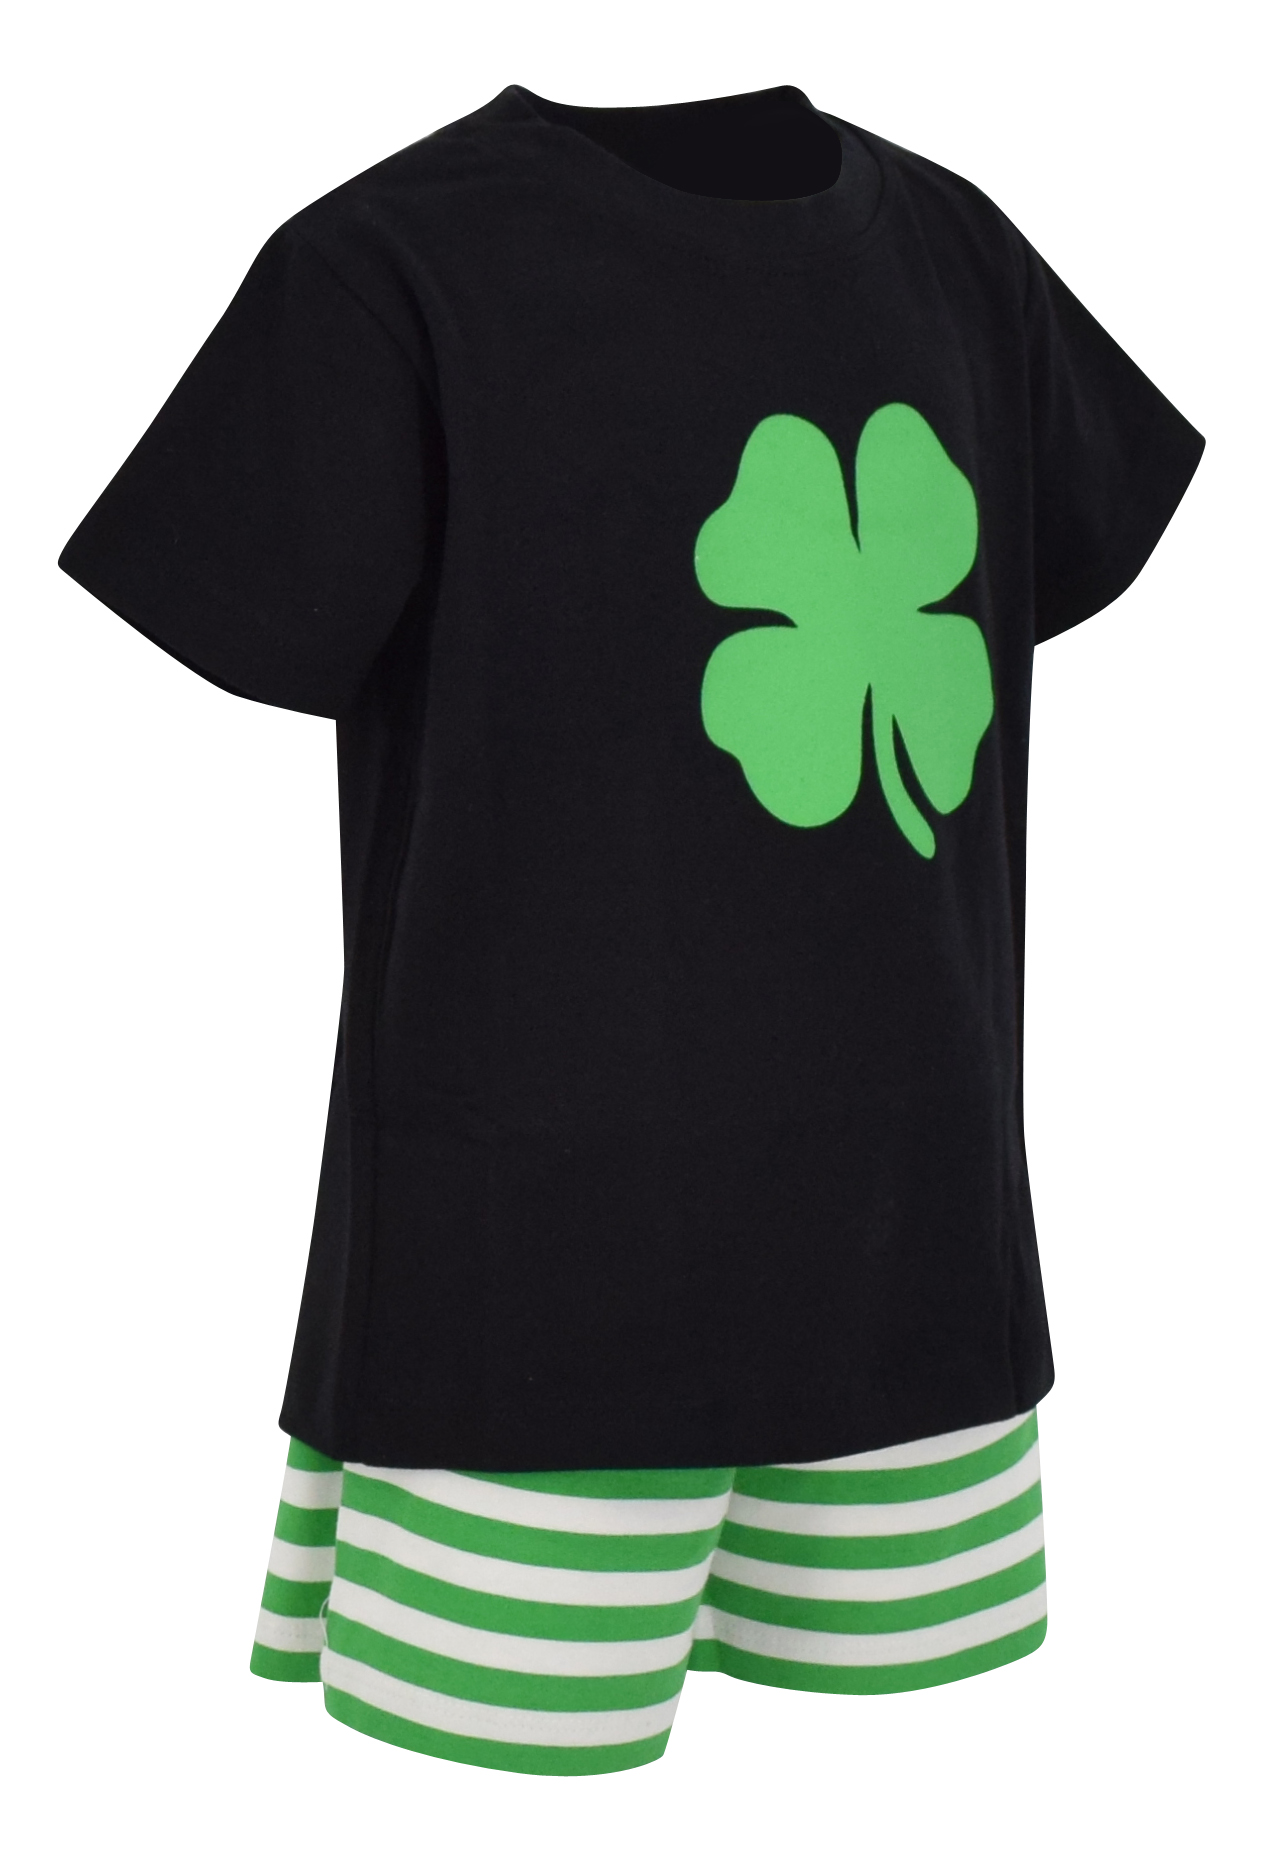 Boys-2-Piece-ST-Patricks-Day-Clover-Outfit-2t-3t-4t-5-6-7-8-Toddler-Kids-Clothes thumbnail 10